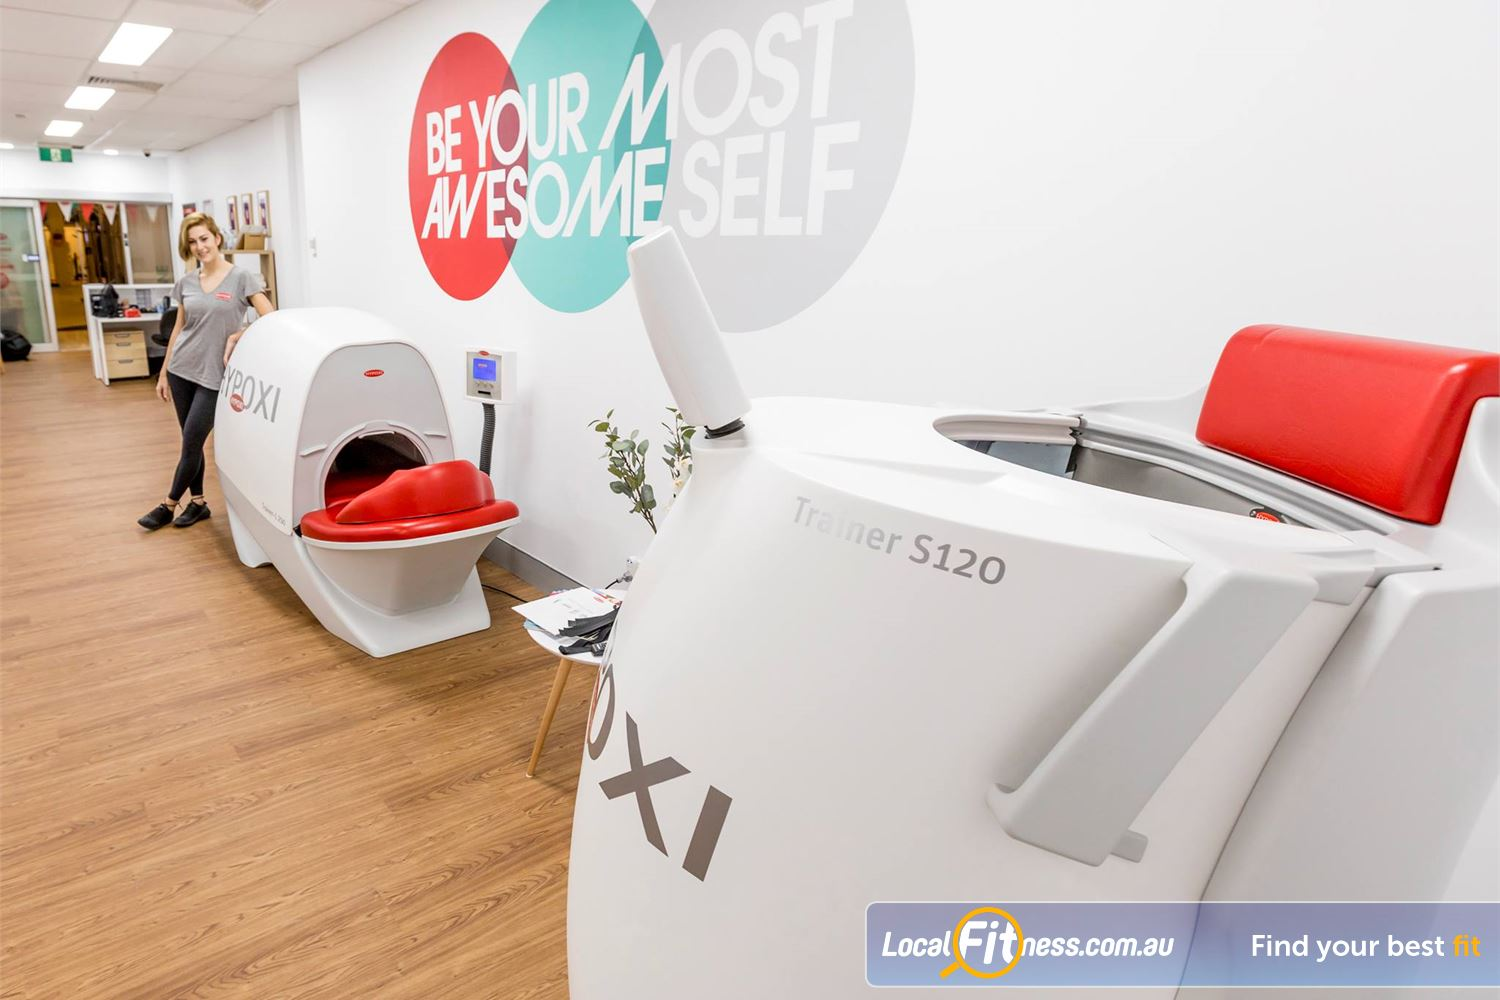 HYPOXI Weight Loss Near Zetland Low-impact exercise with advanced technology and healthy nutrition.